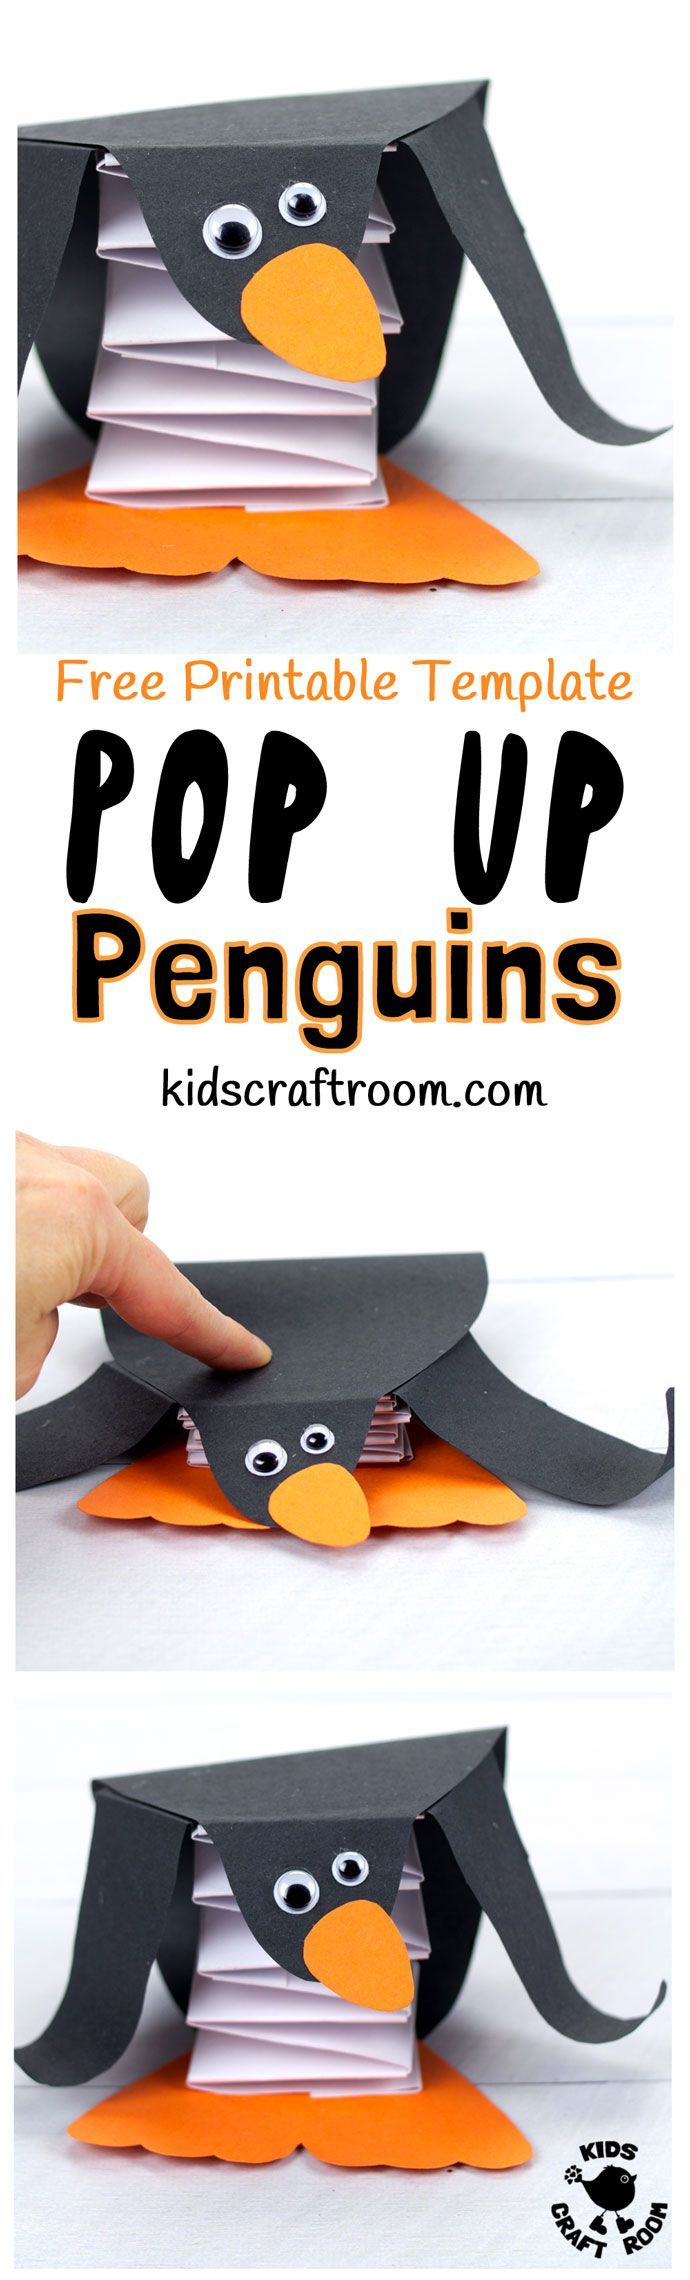 best educational activities and crafts for kids images on